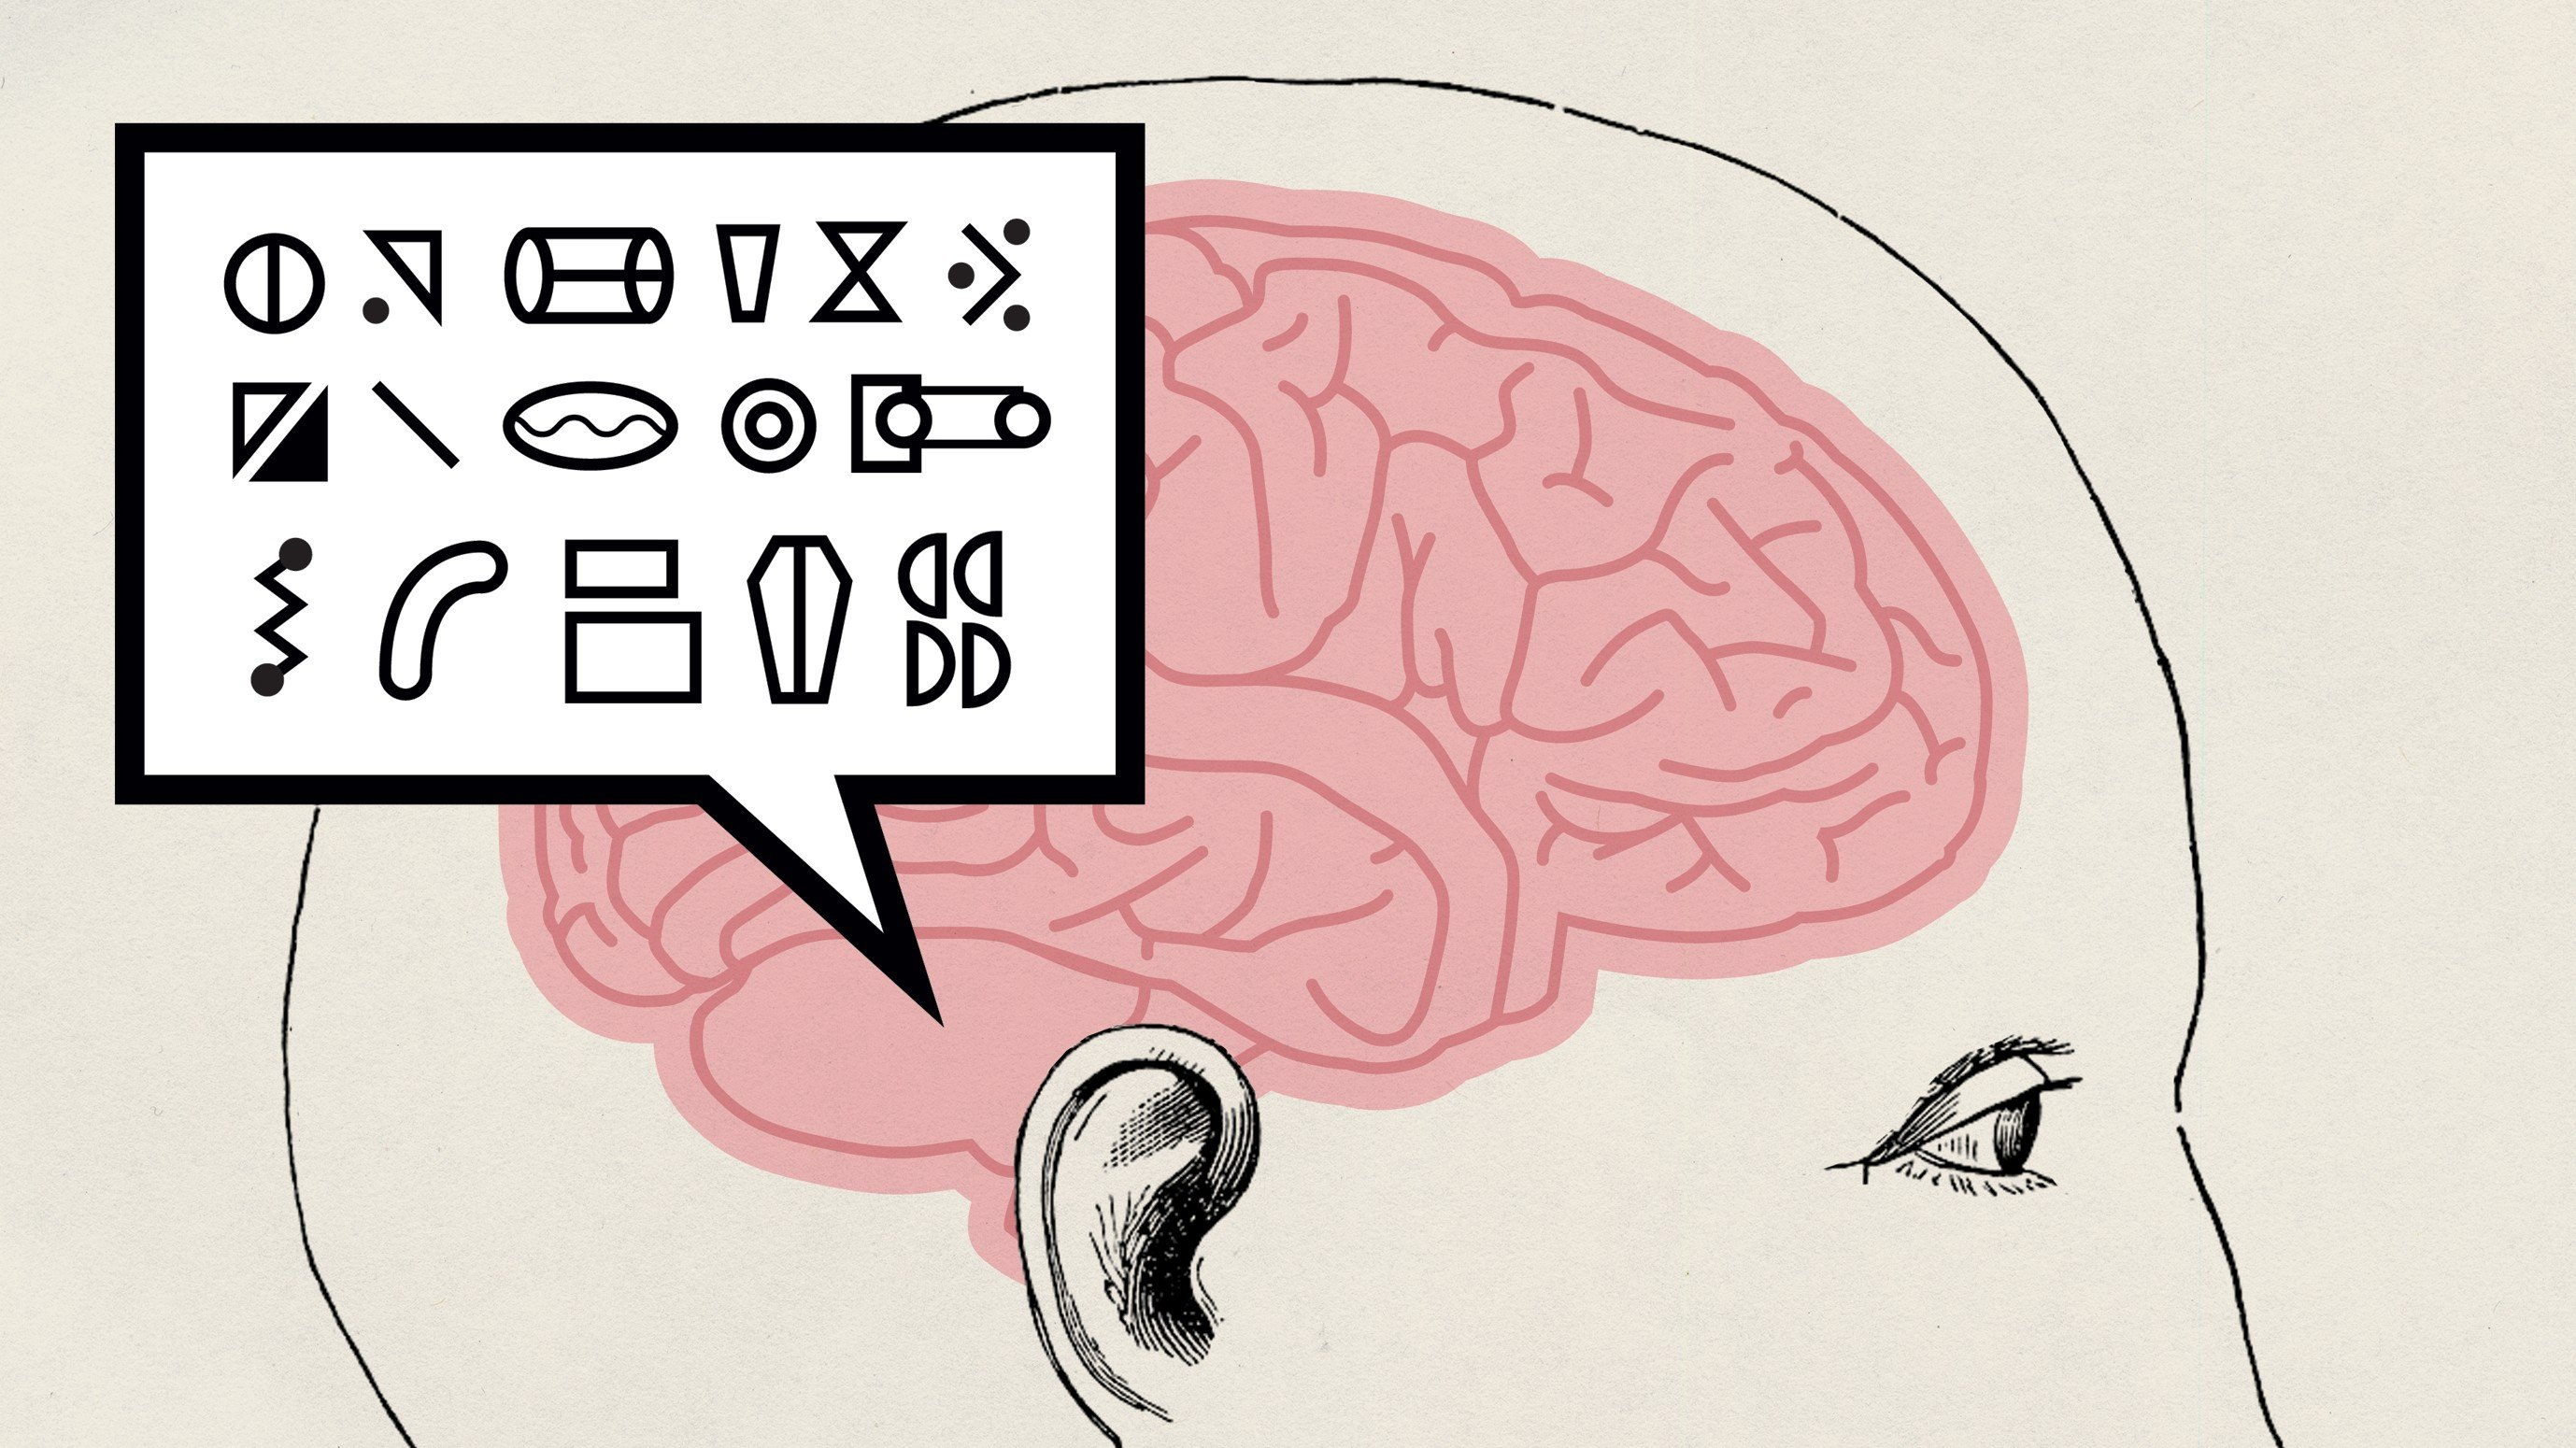 Here Are Some of the Codes the Brain Uses to Communicate with Itself